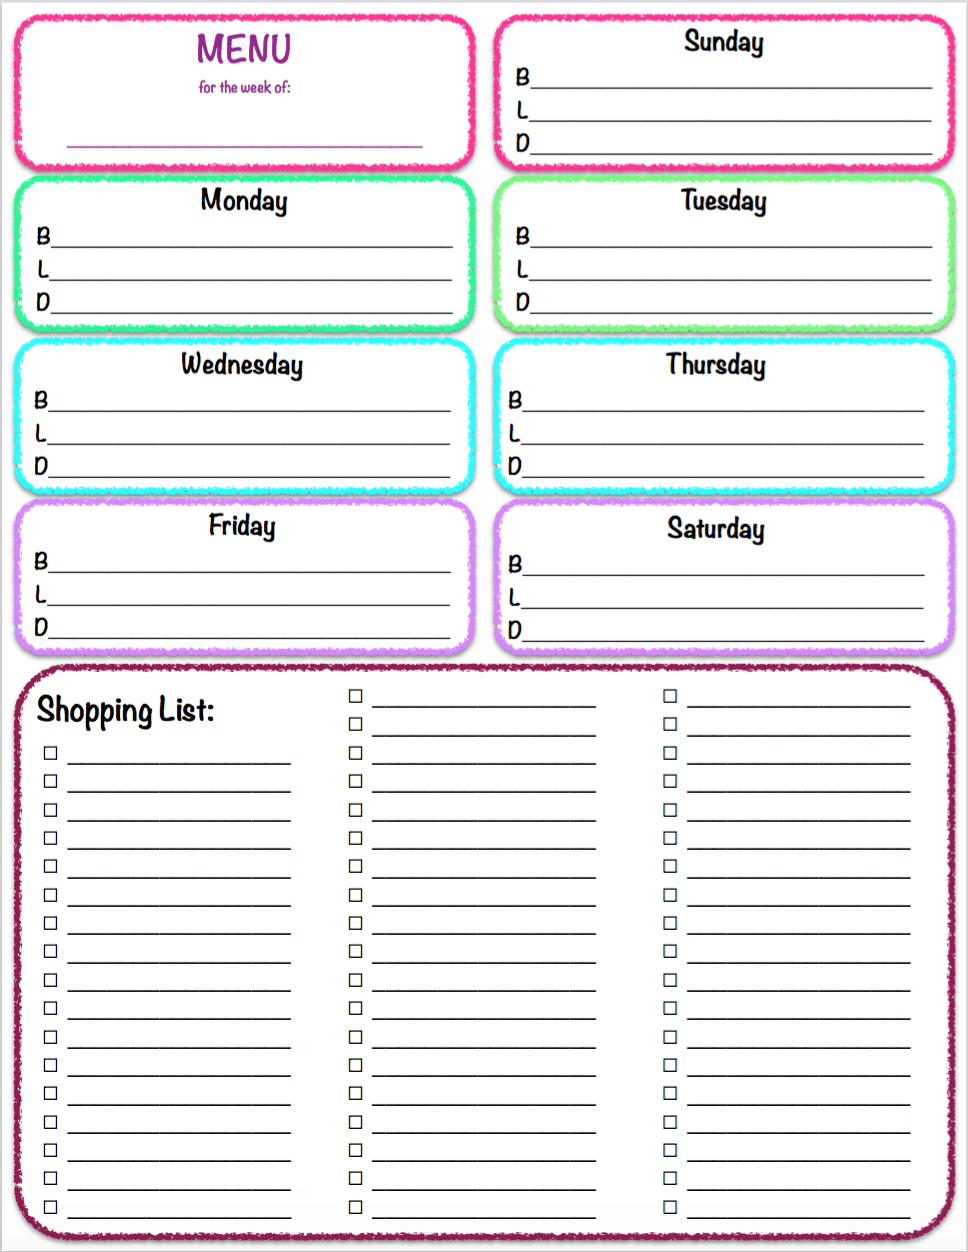 Meal planner and shopping list pdf template